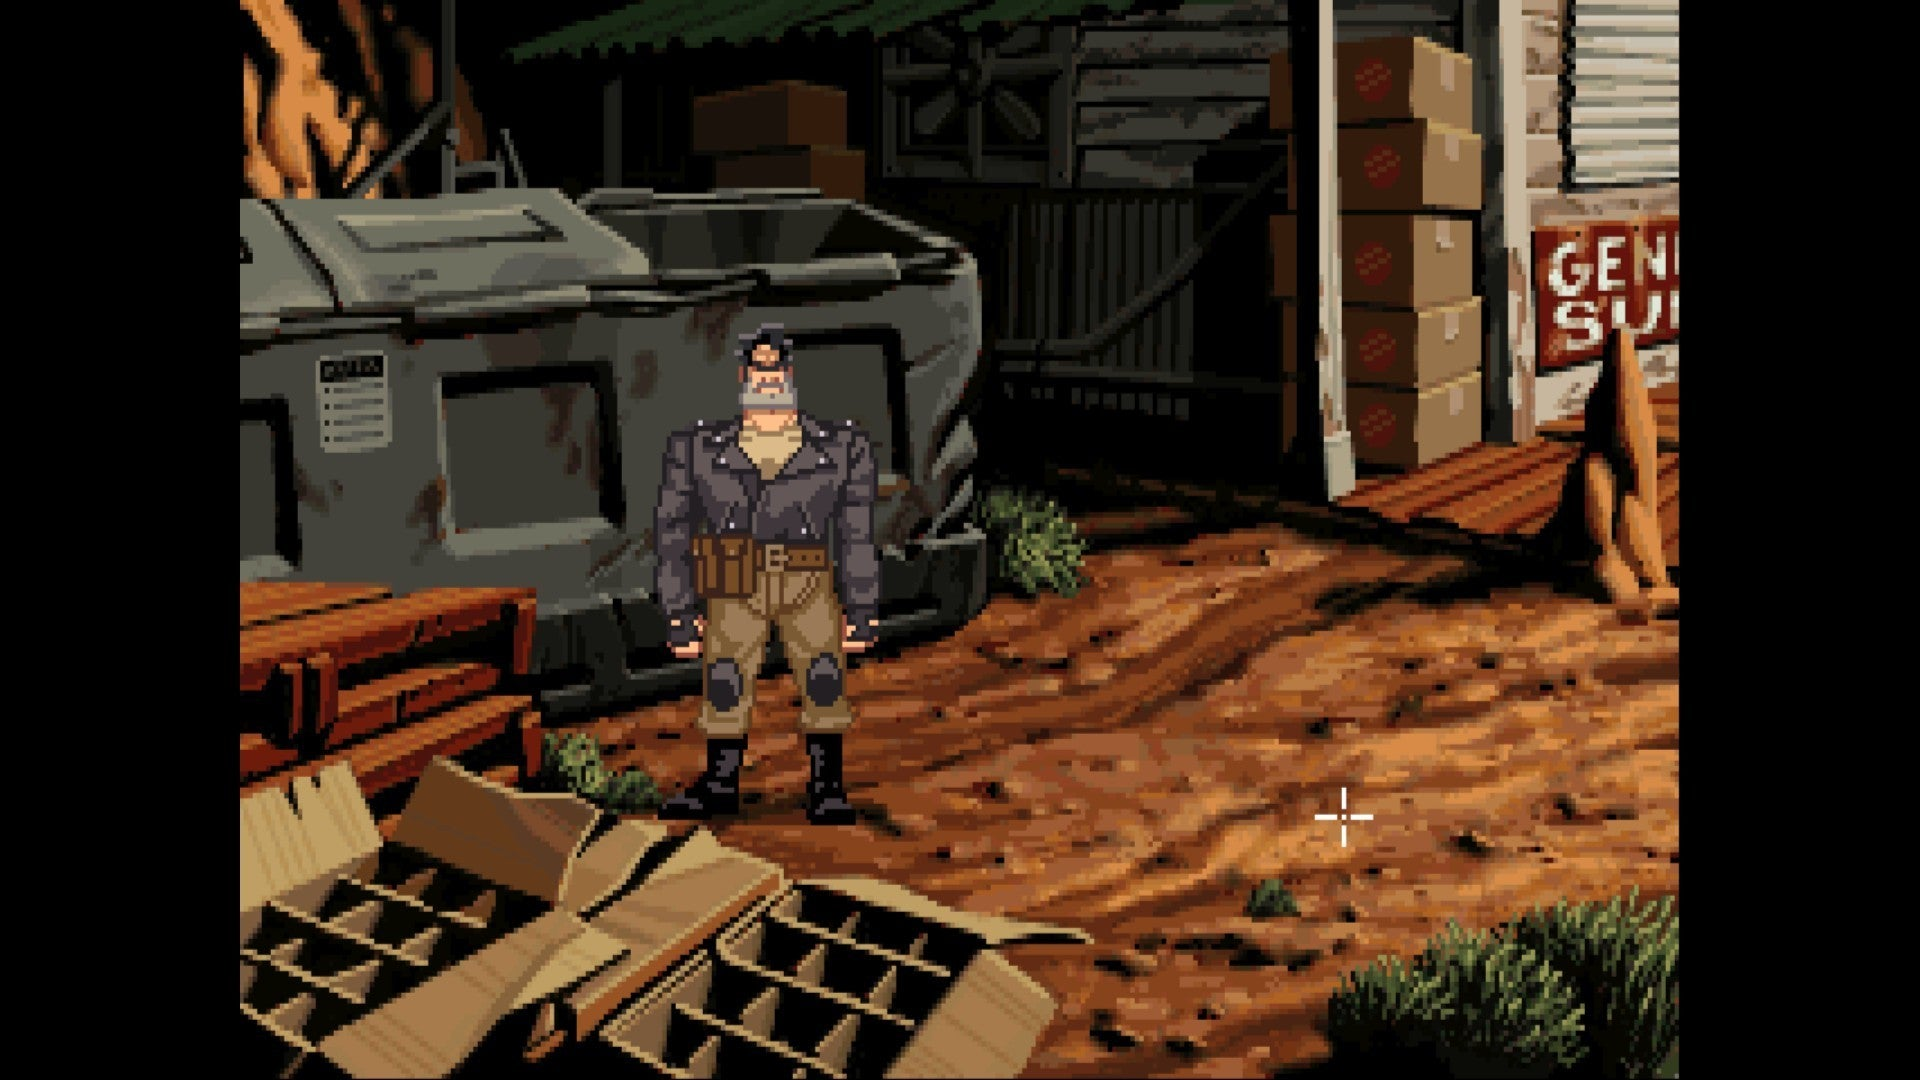 Full Throttle Remastered Review A New Coat Of Paint Doesn